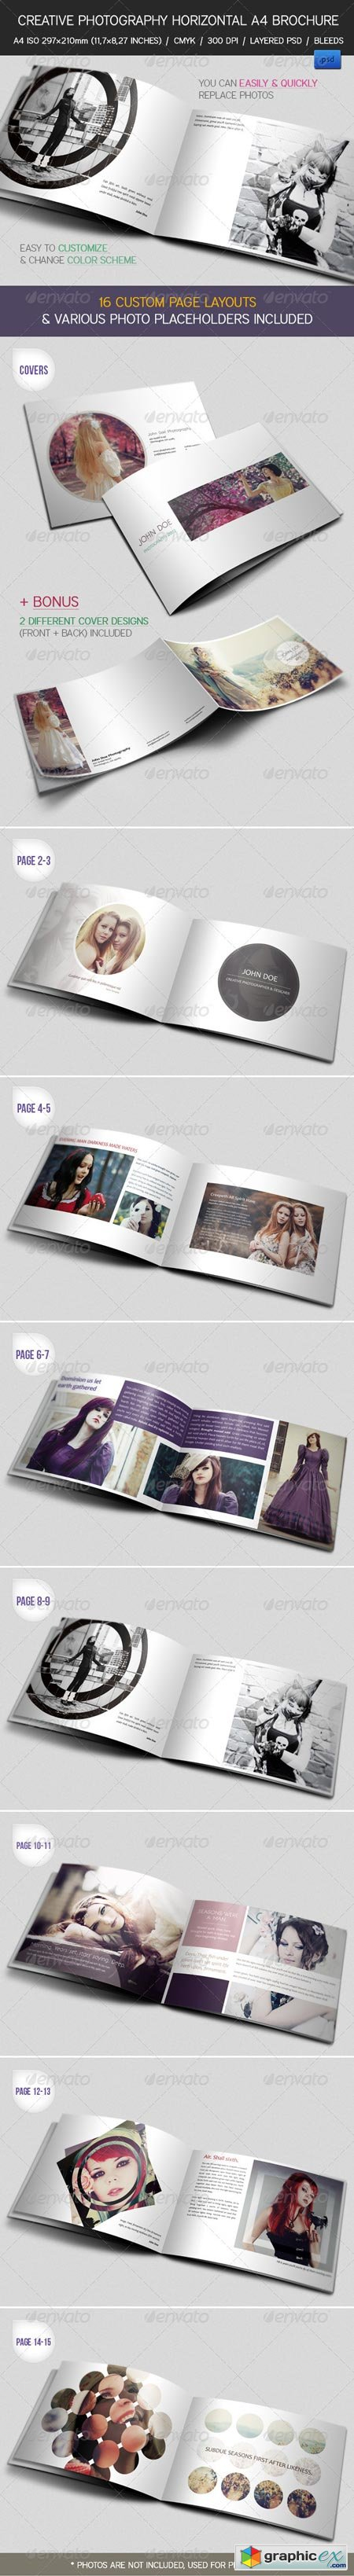 Creative Photography Portfolio A4 Brochure 2453225